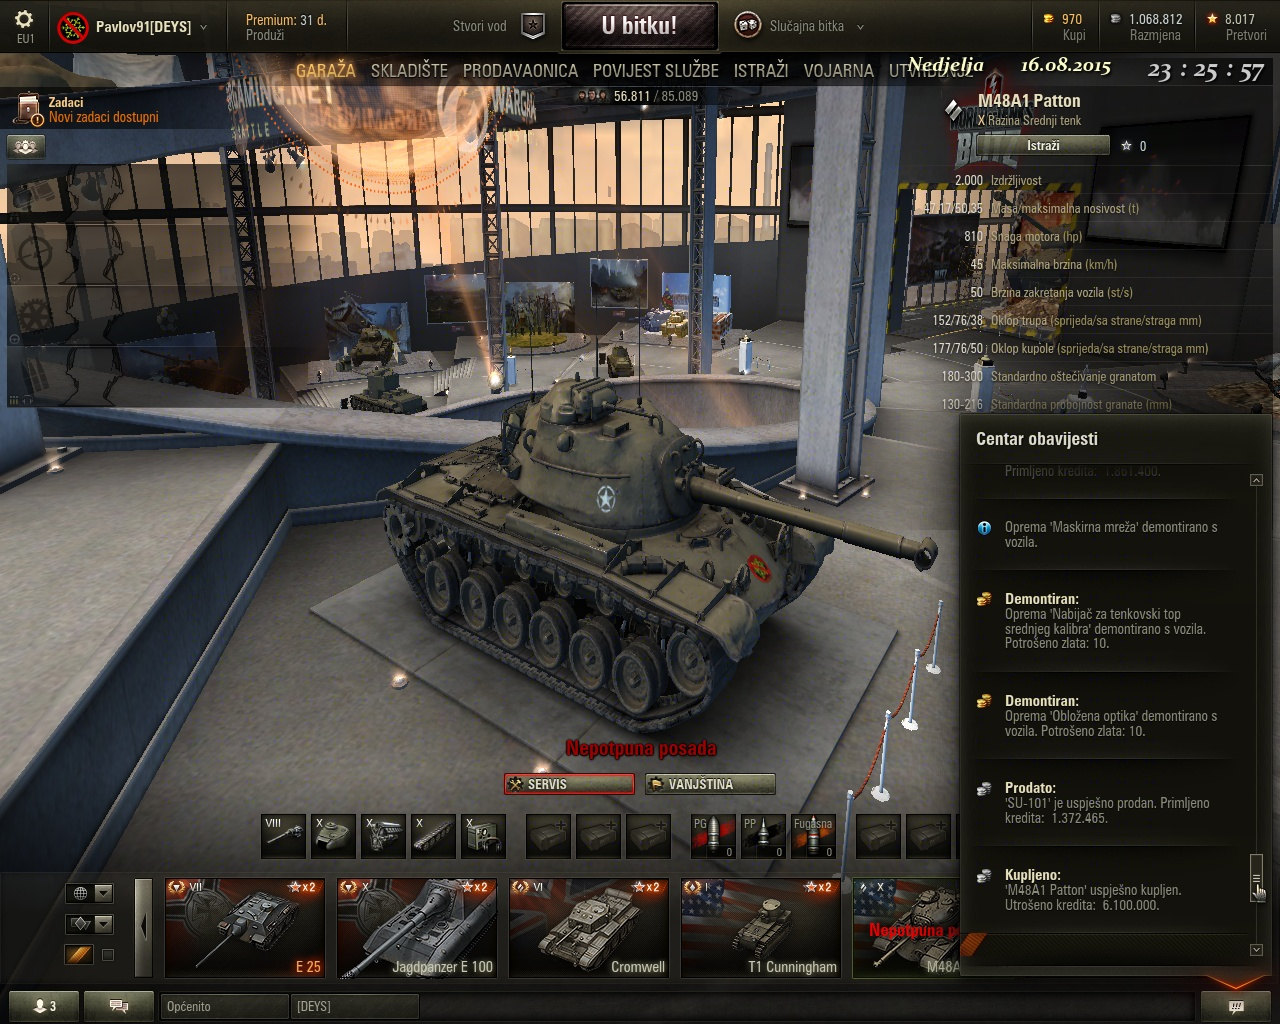 Pavlov91 - M48 Patton - The general Shot_290